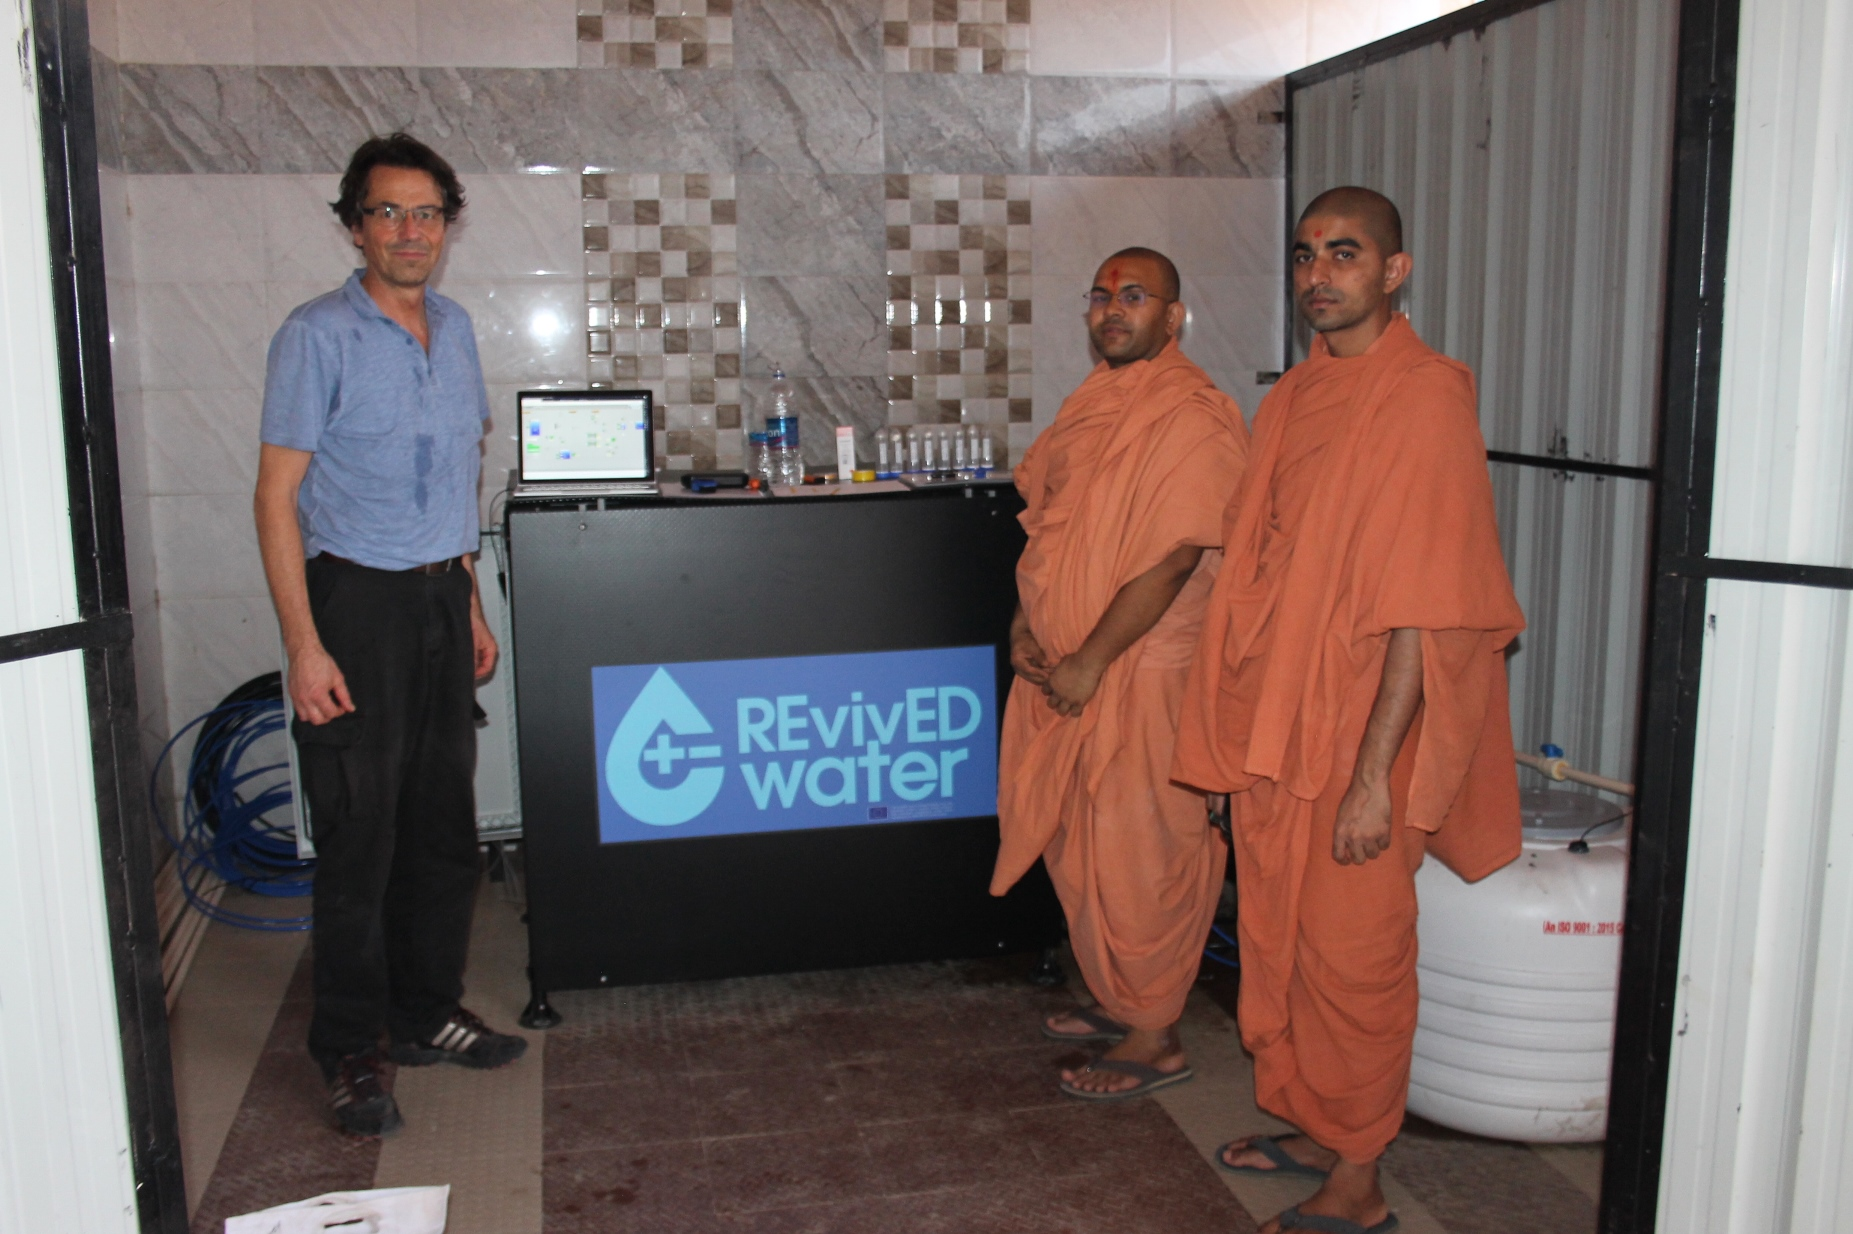 Hindu monks visit the installation.